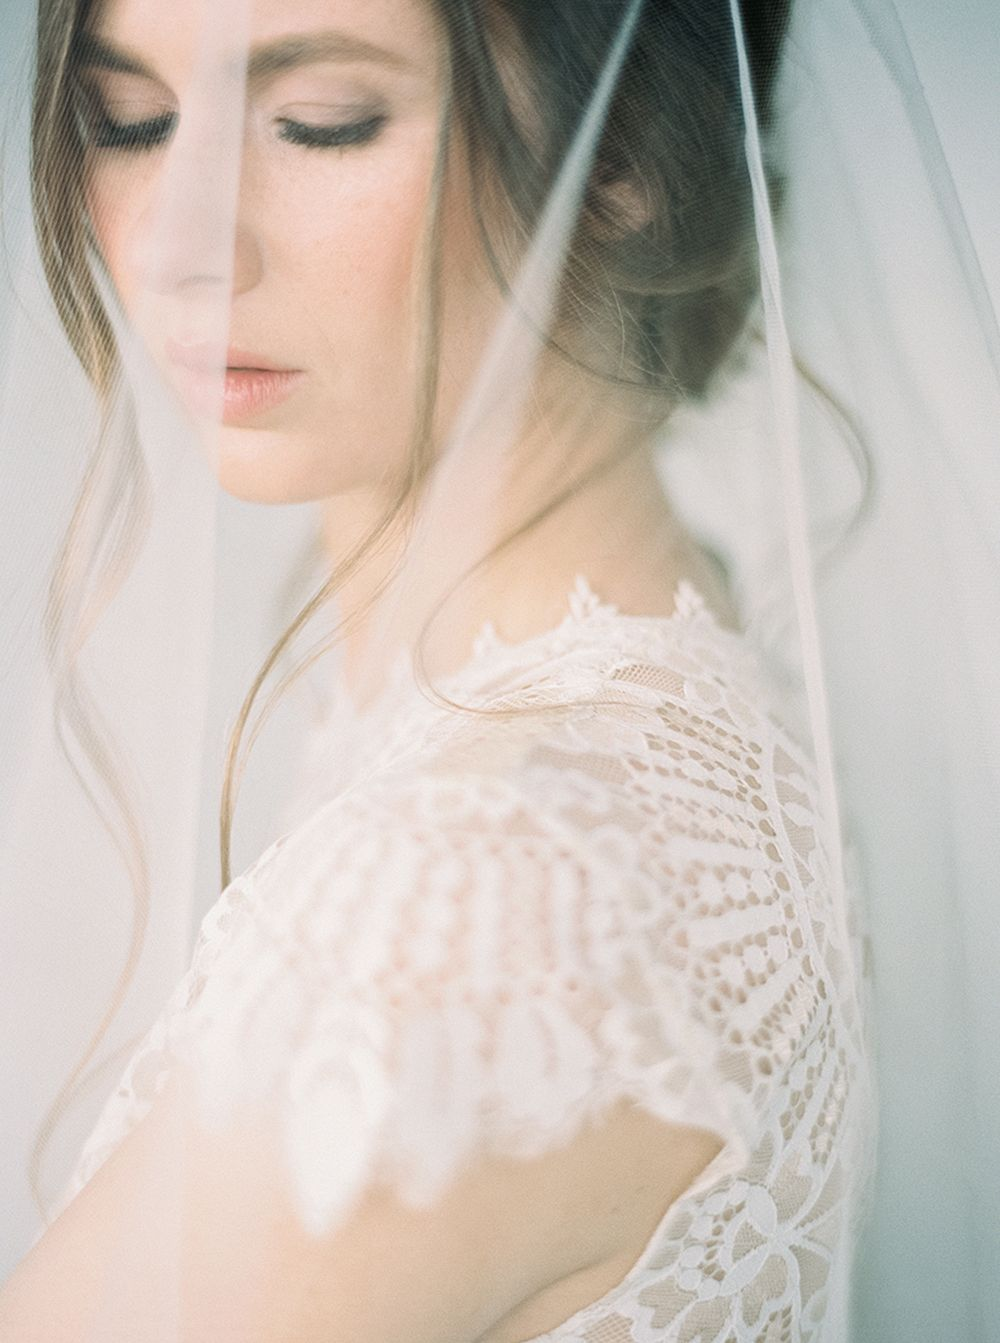 Ethereal Wedding Dress.Ethereal Bridal Style With A Clean Minimal Aesthetic By Luna De